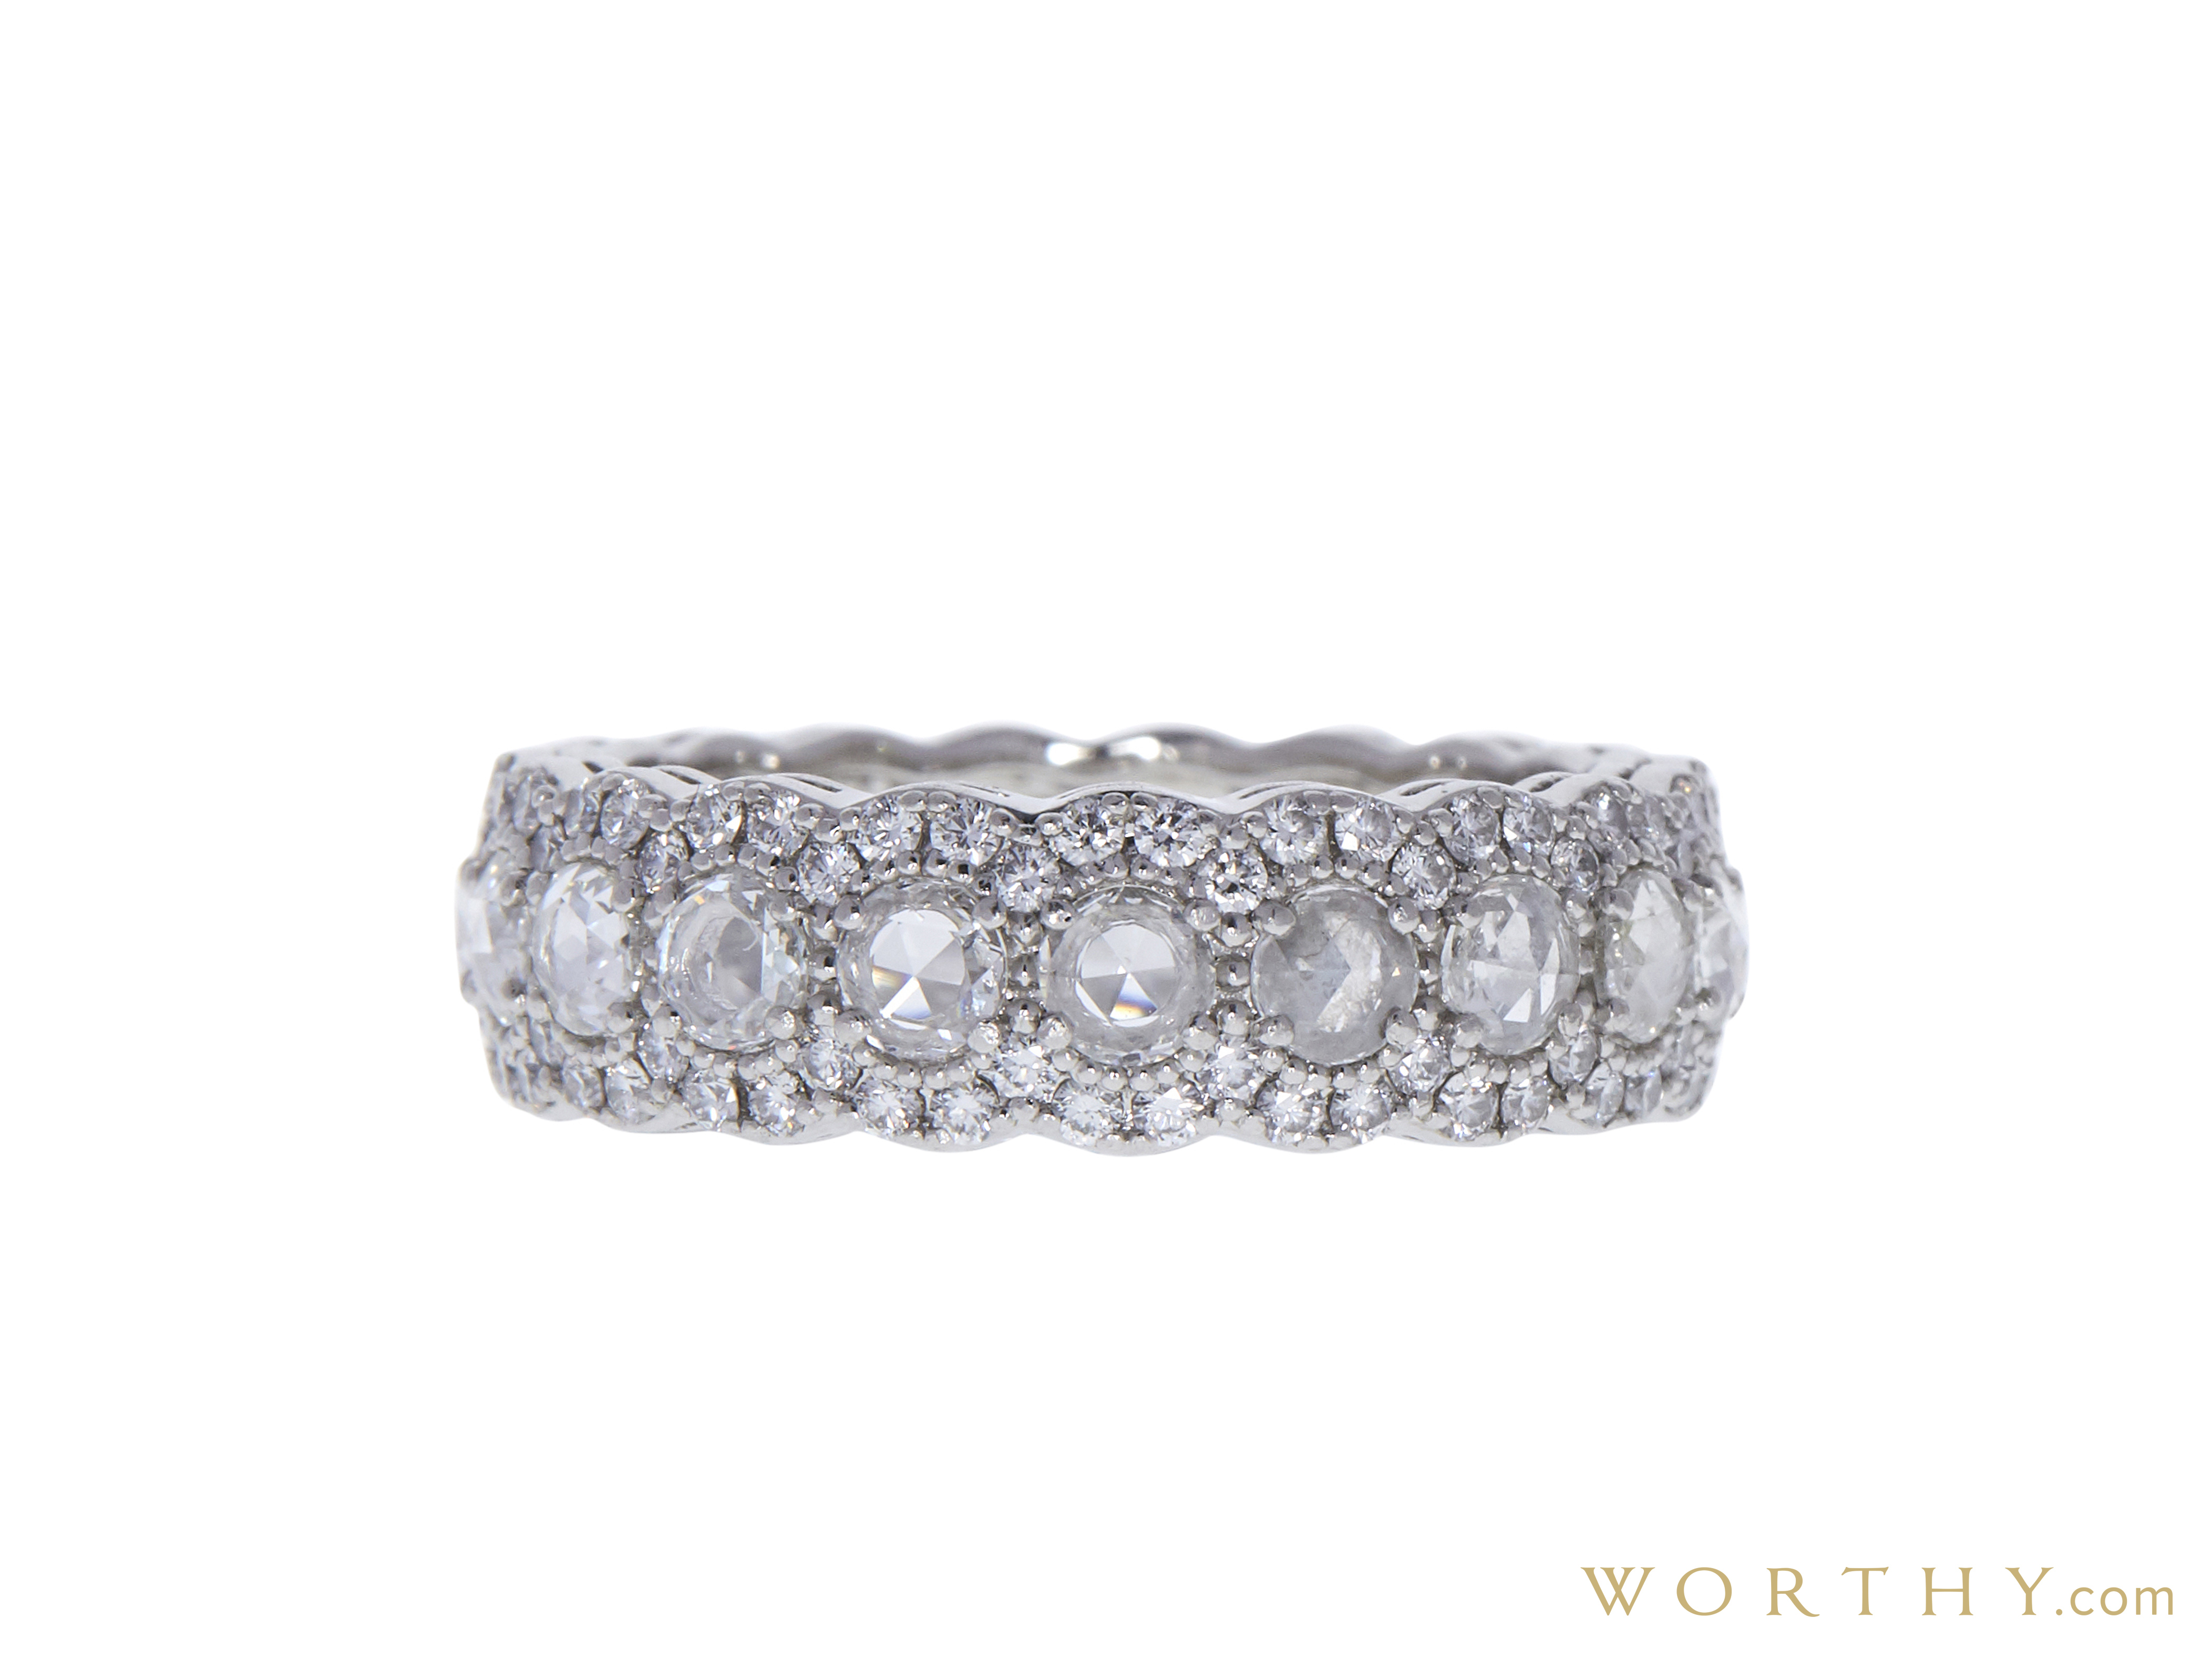 6d9266029 Rose Cut Eternity Band Tiffany & Co. Ring, GH, VS1-VS2 Sold for $2500